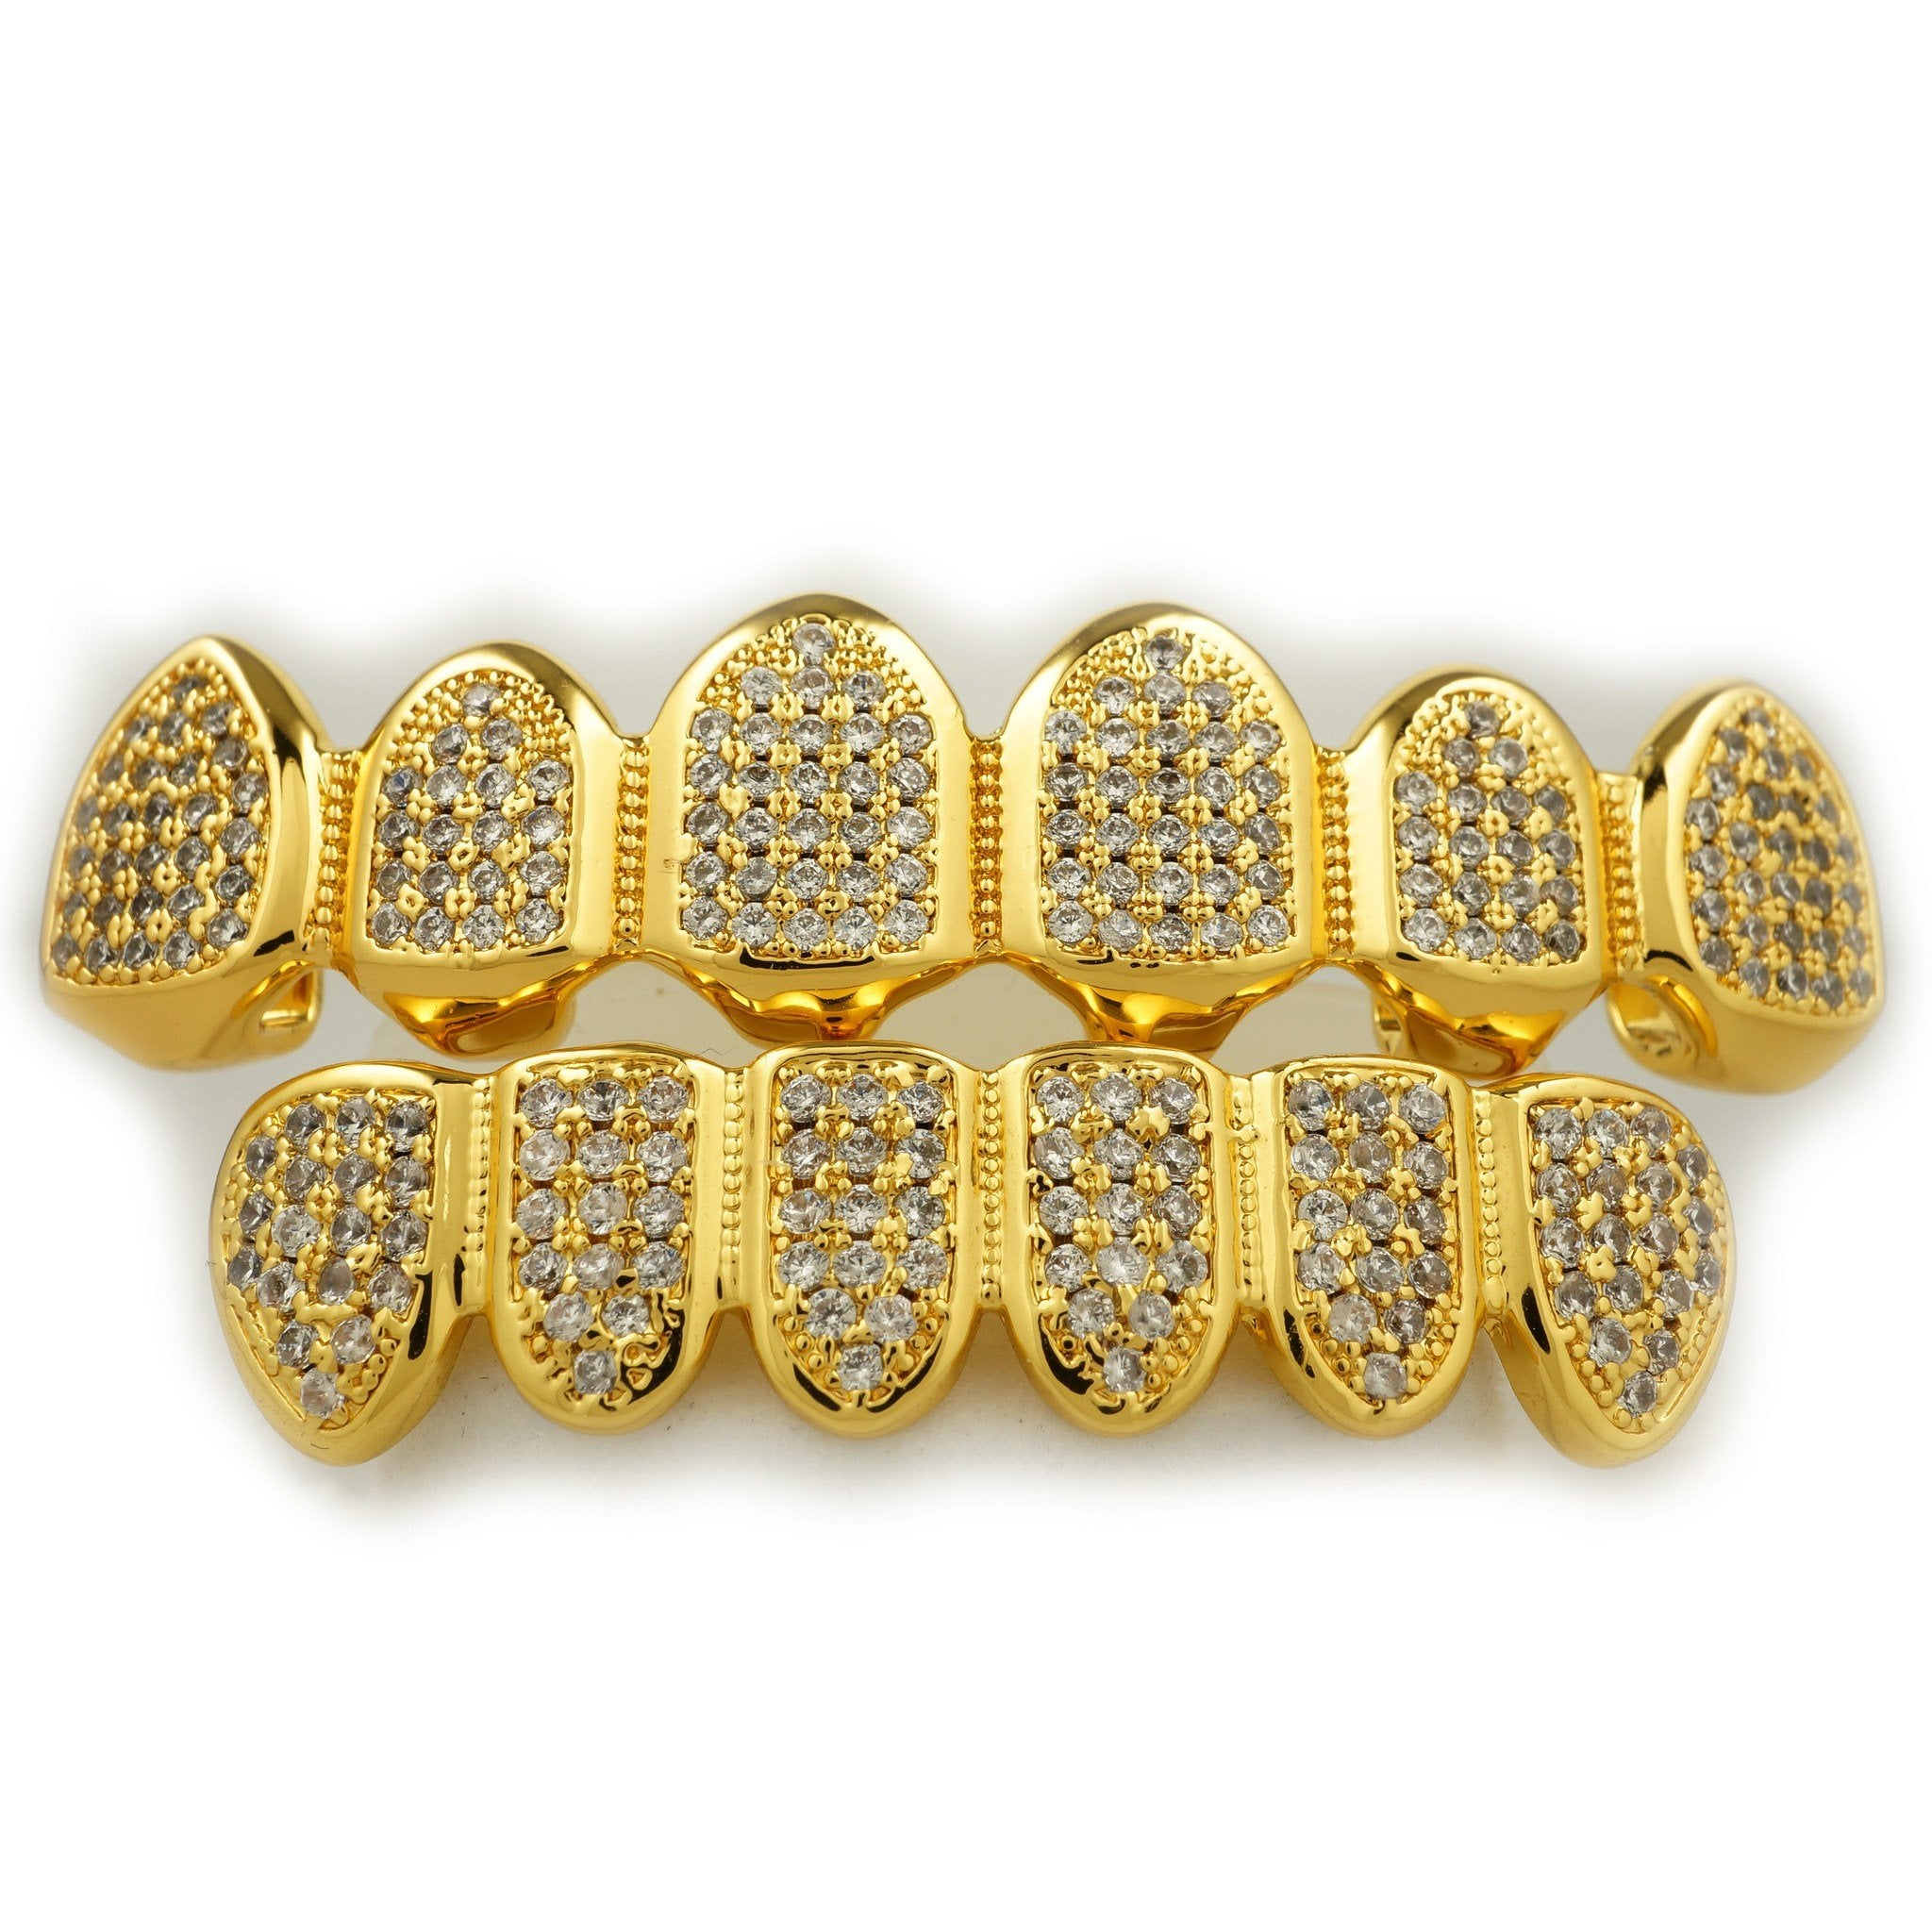 Grillz Gold Teeth Removable Gold Teeth Jewelry Gold Fronts